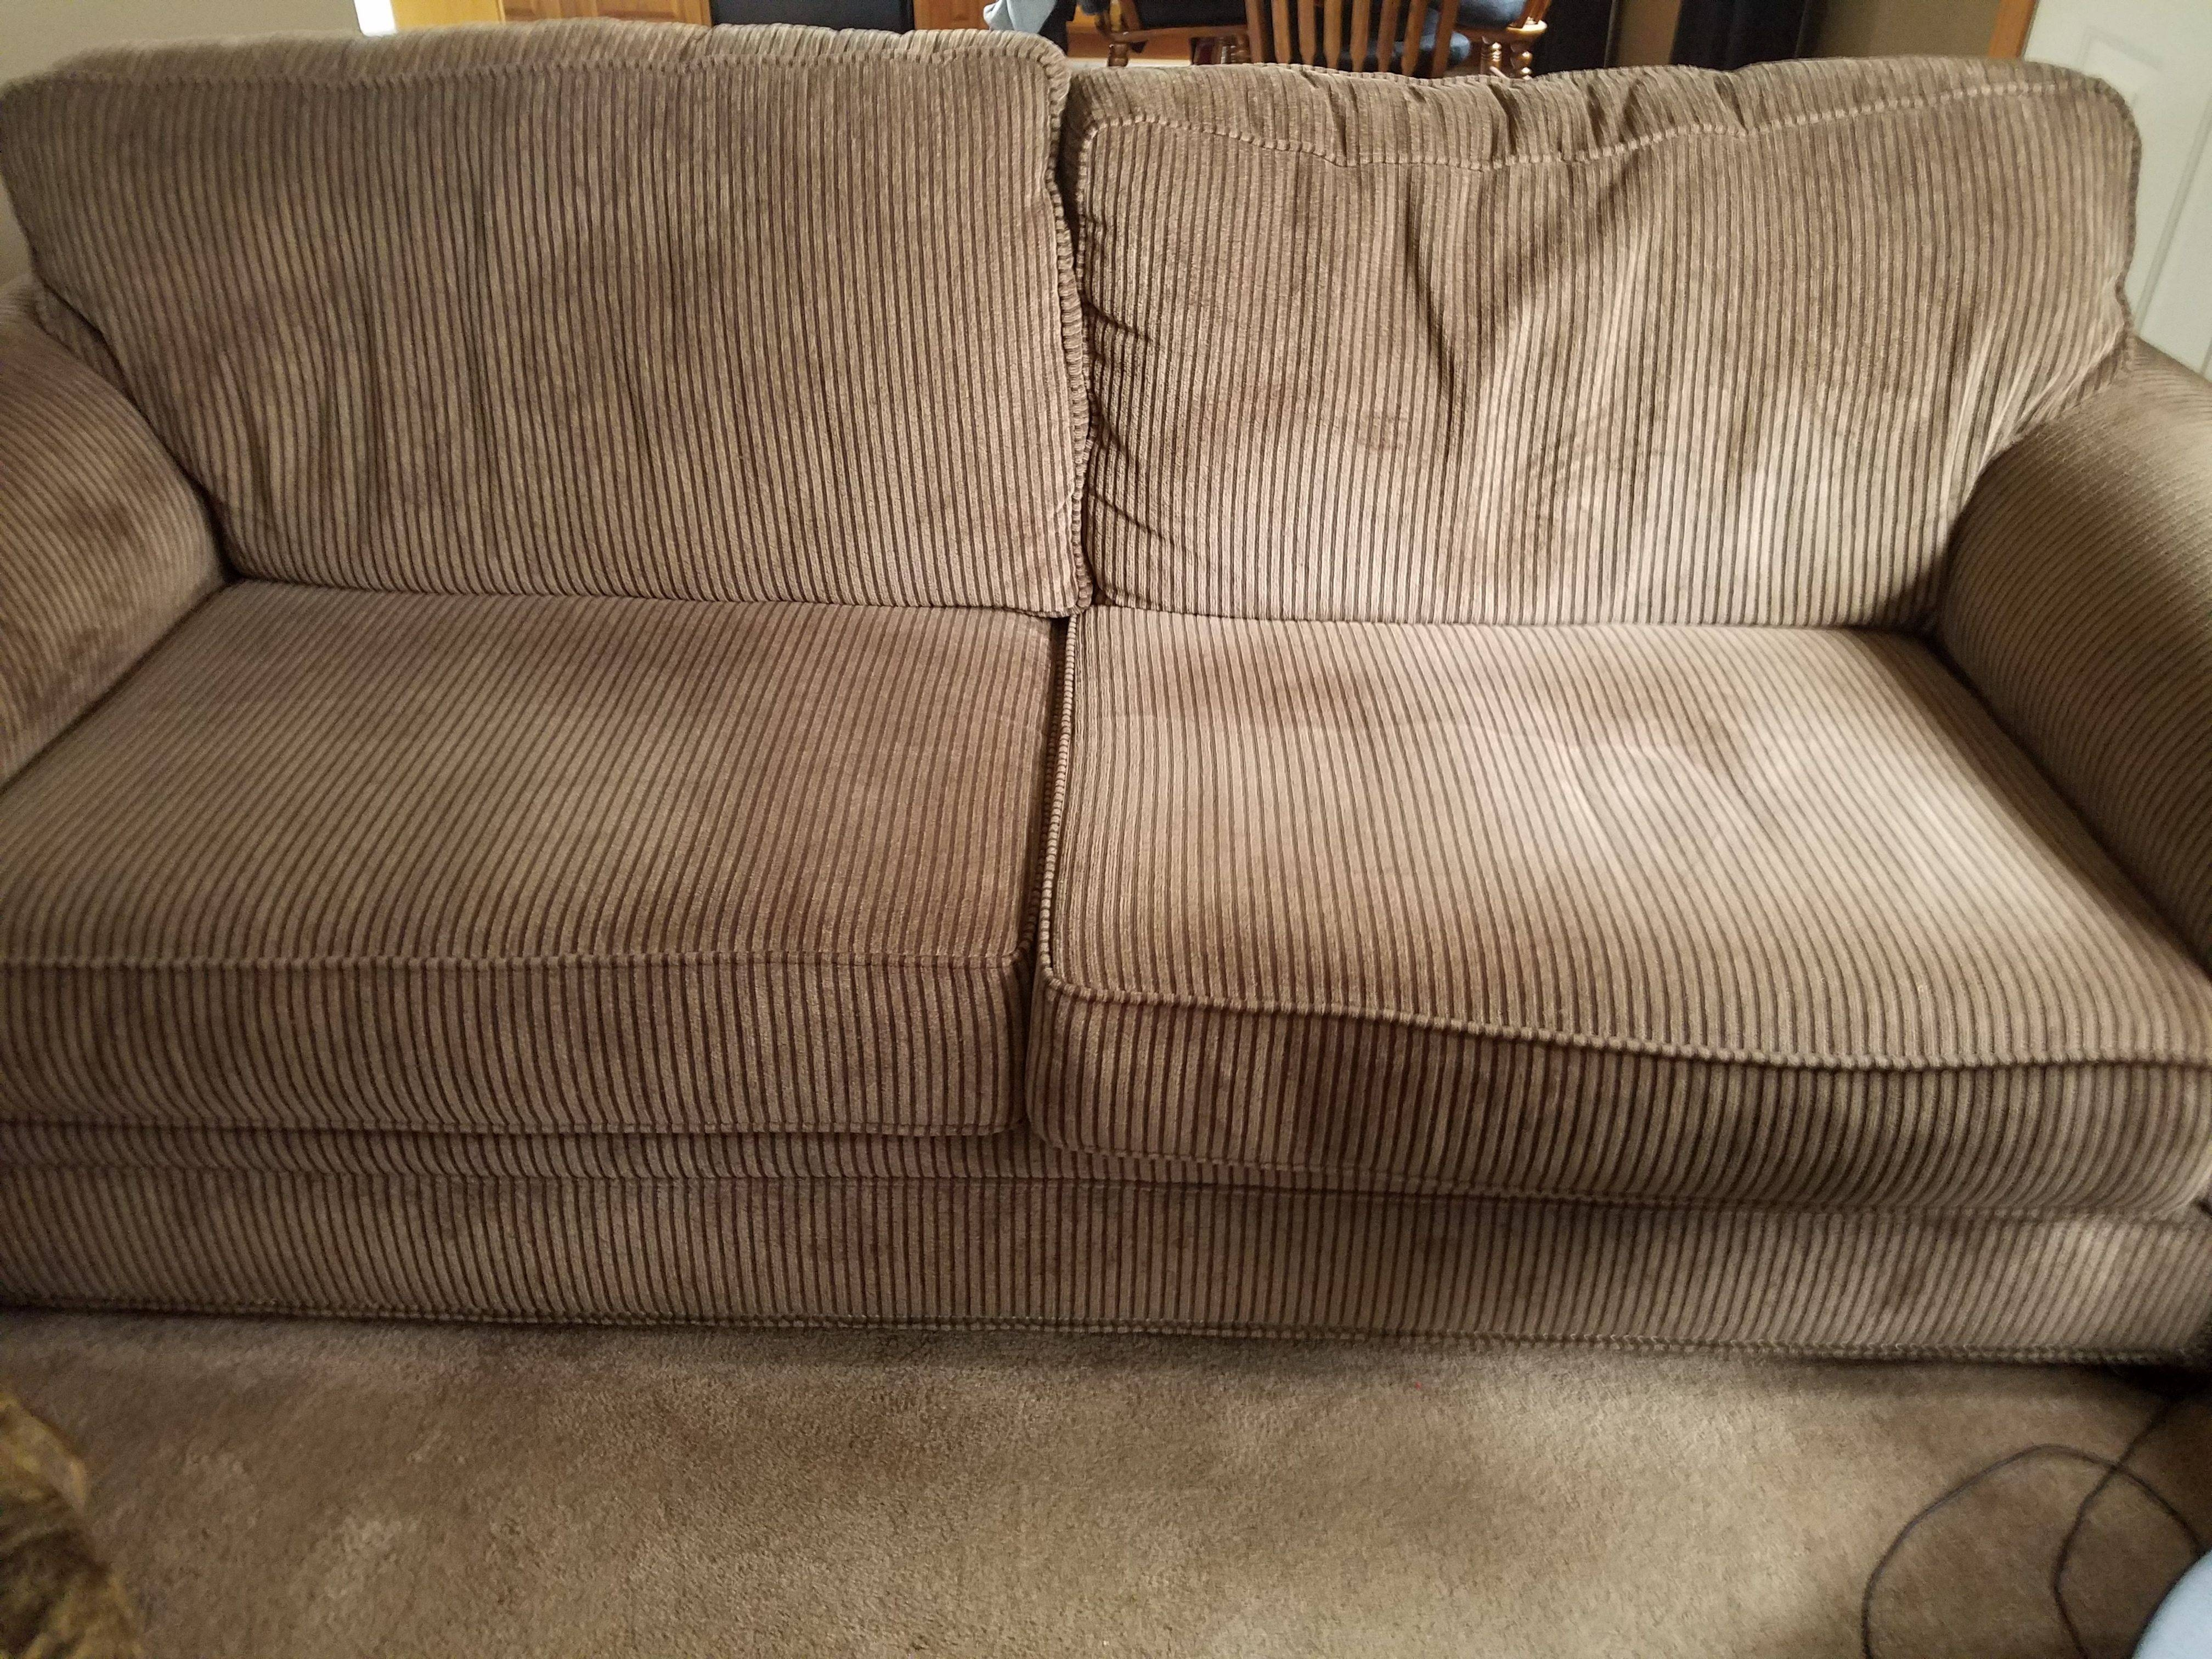 Top 129 Reviews And Complaints About Broyhill within Broyhill Sectional Sofa (Image 28 of 30)